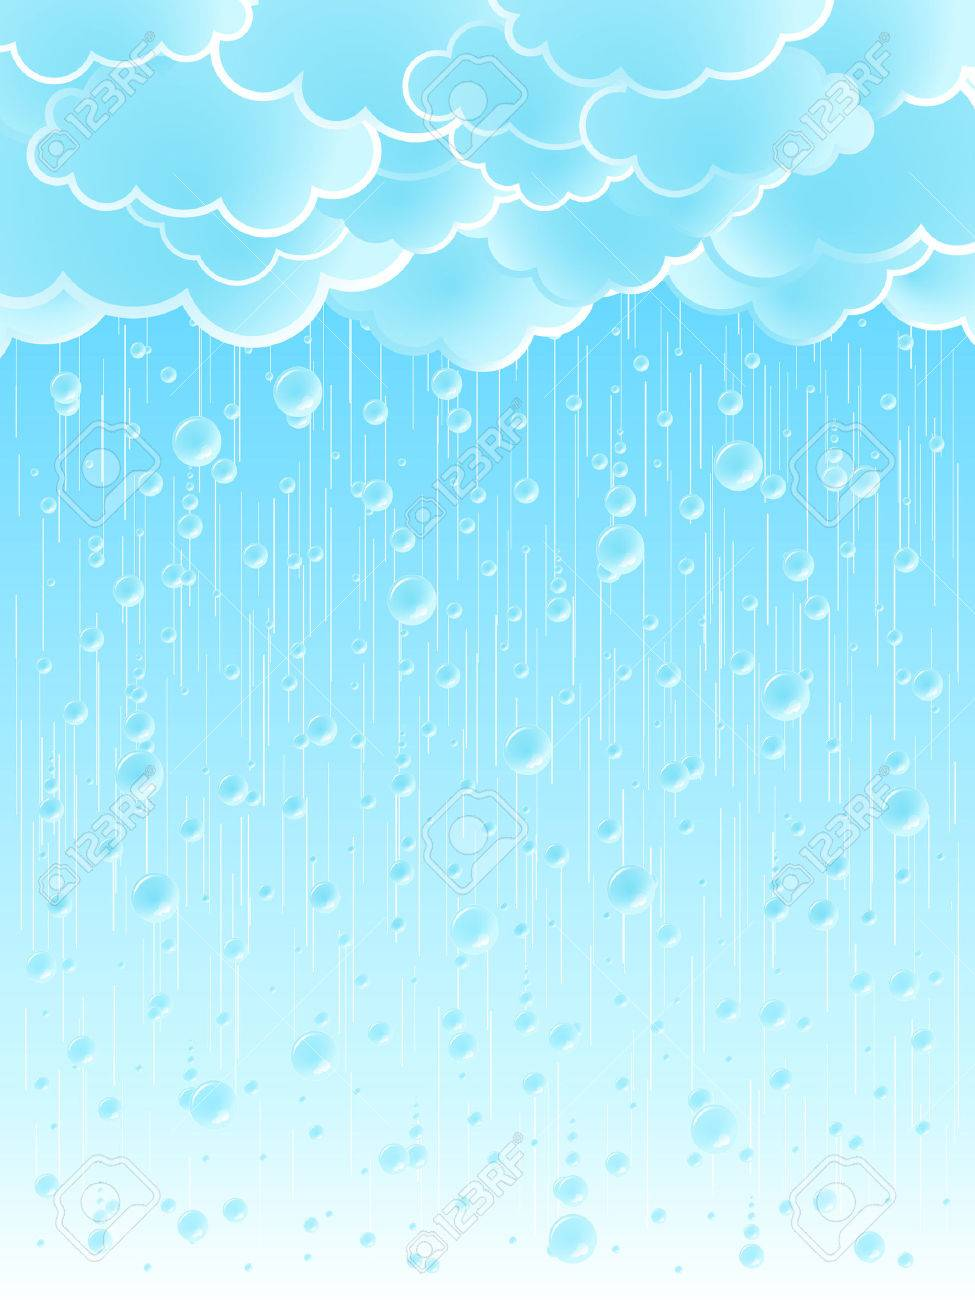 Vector illustration of a beautiful light summer shower rainy weather background. - 3373297